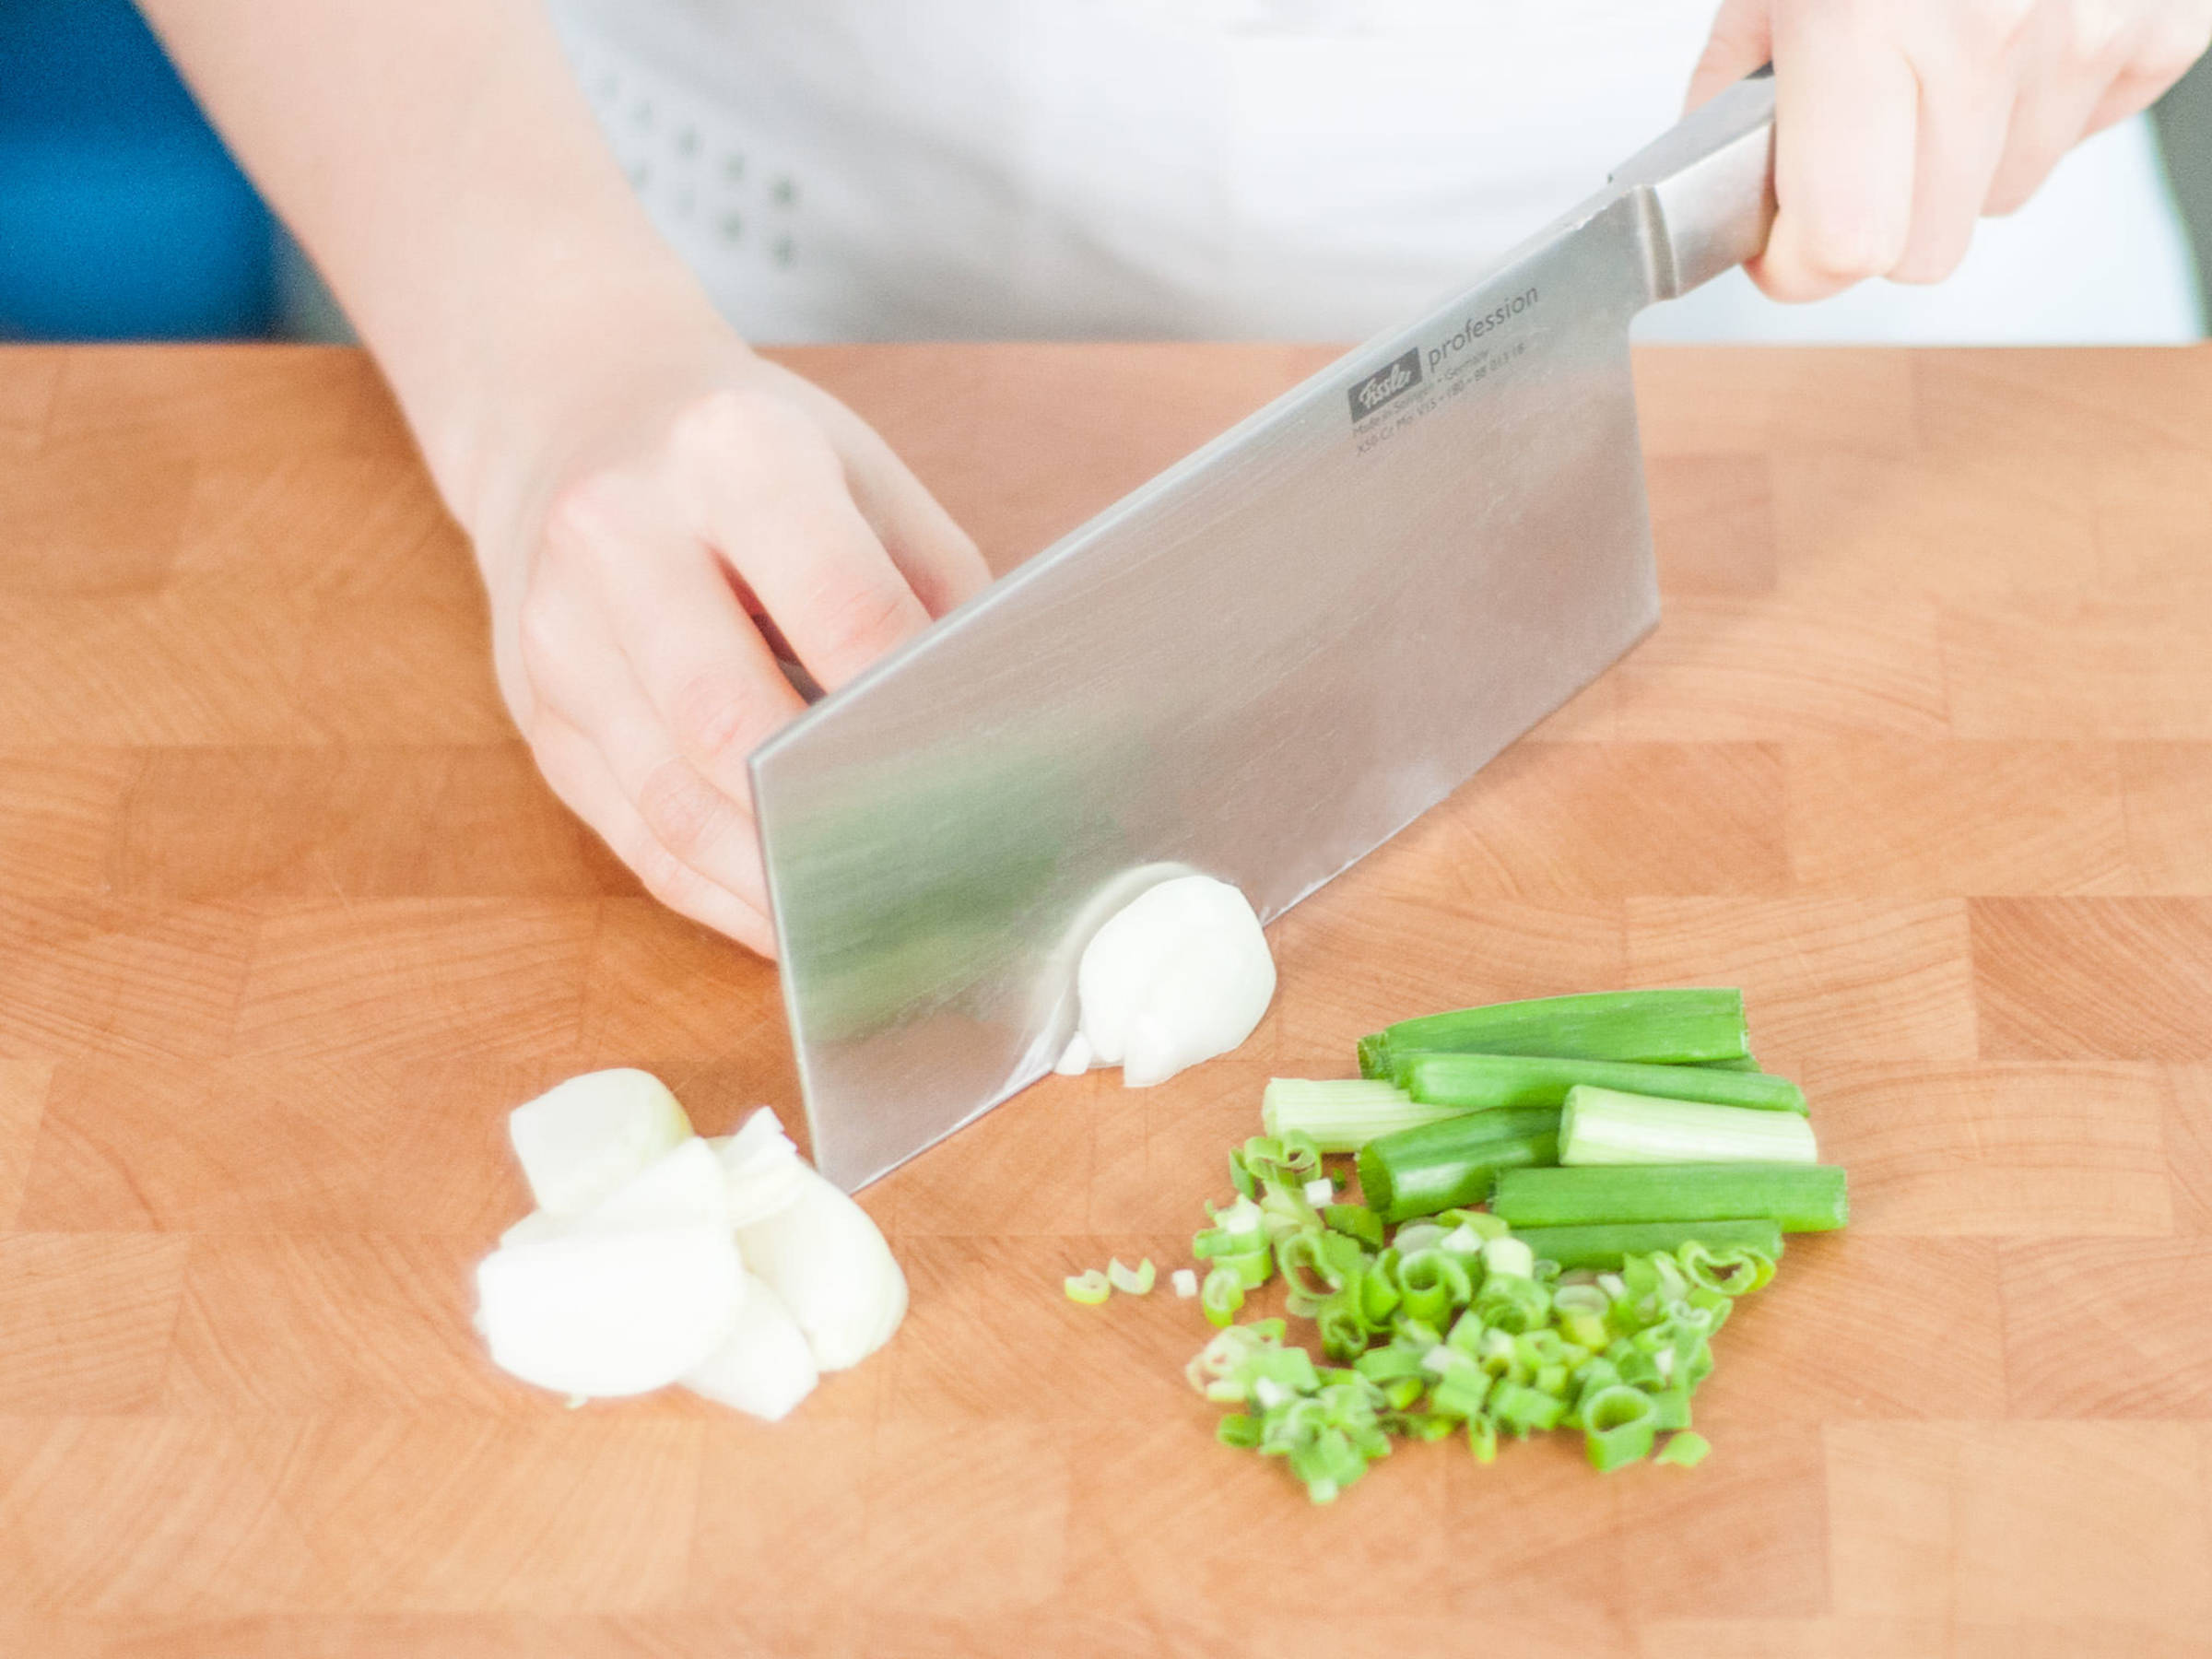 Halve the white tops of half of the scallions lengthwise, then roughly chop them; finely chop remaining scallions. Julienne the onion.